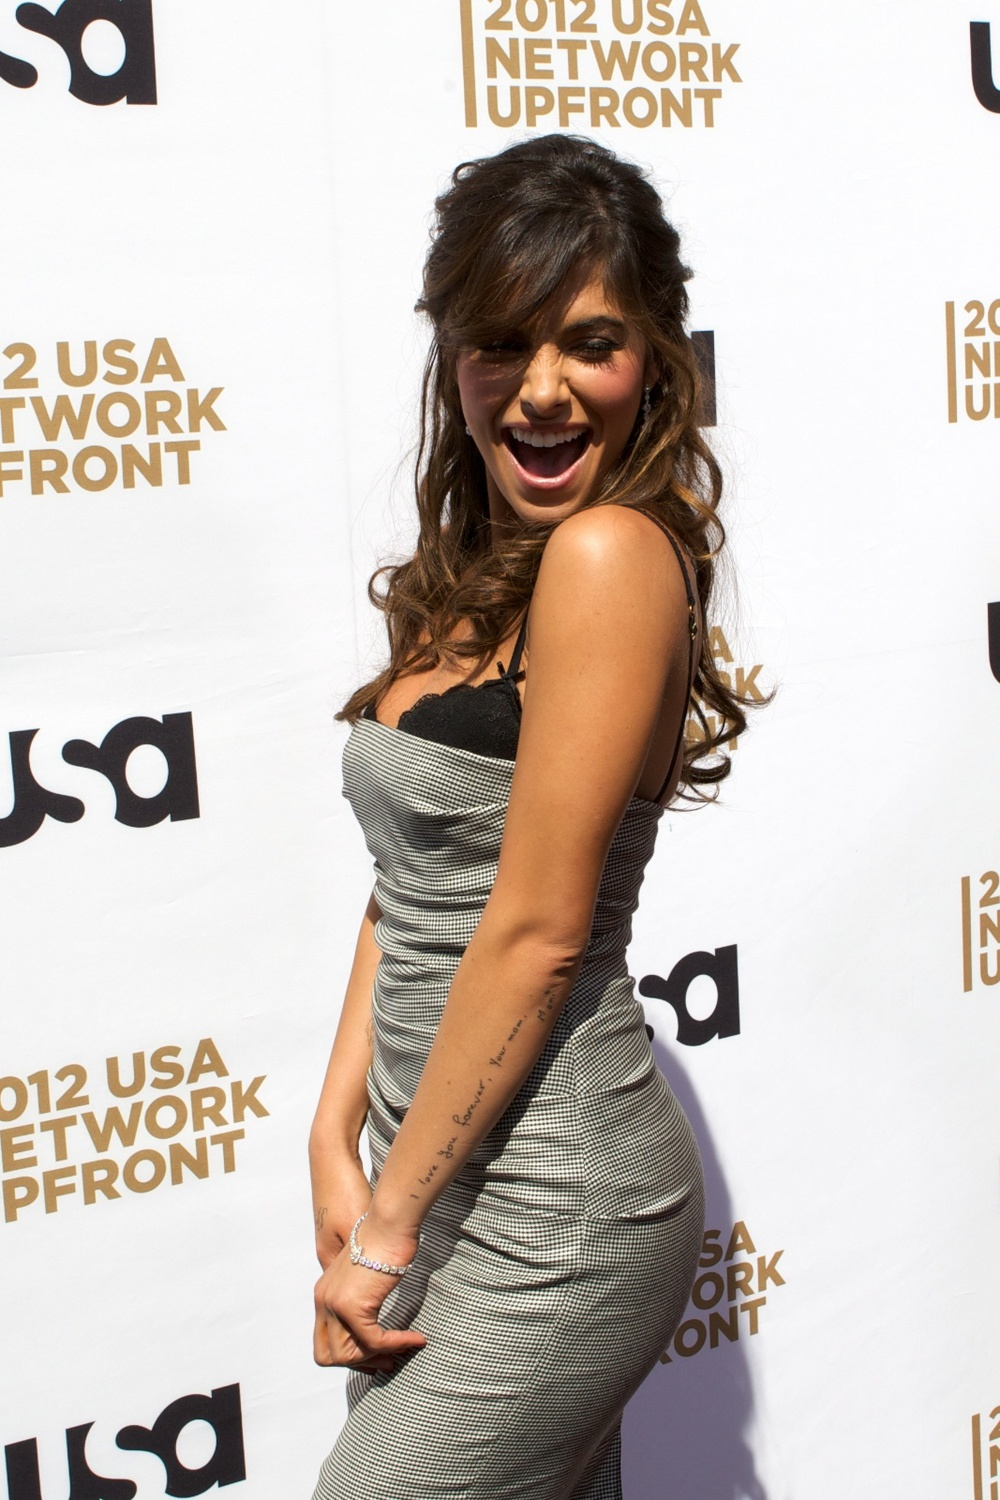 USA Red Carpet Upfront 2012  059.jpg